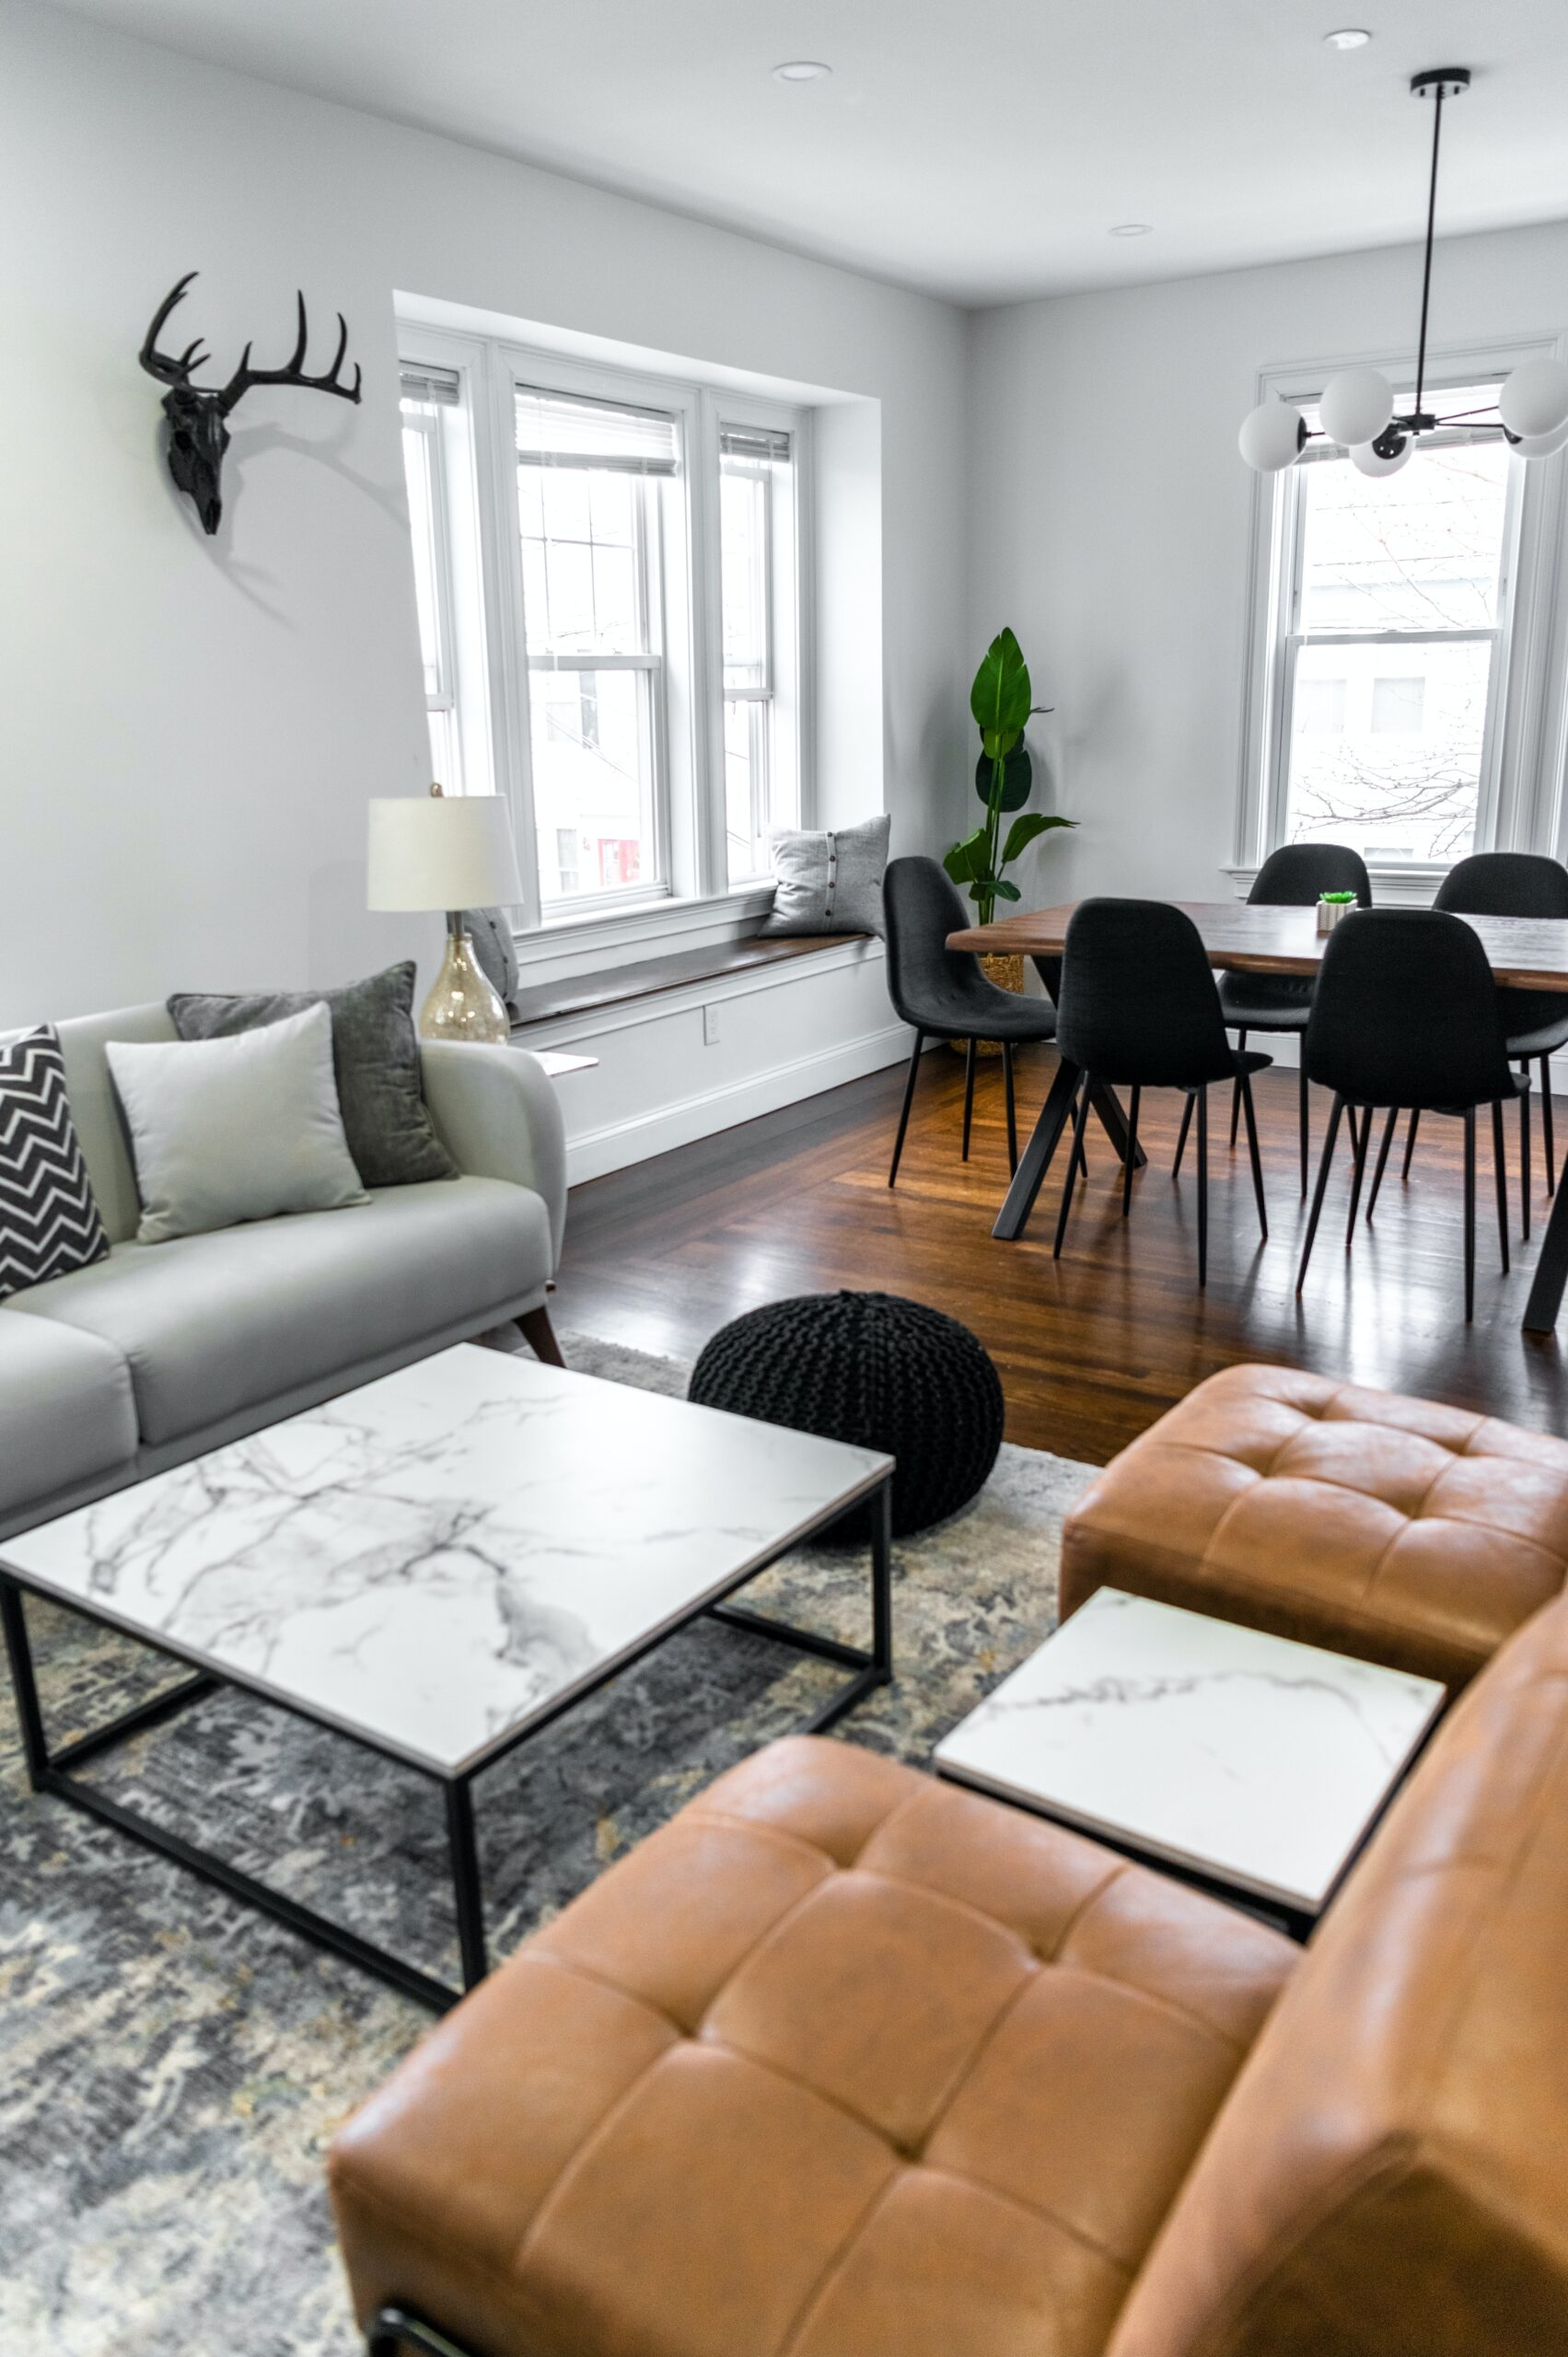 10 Reasons to Hire a Professional Property Manager